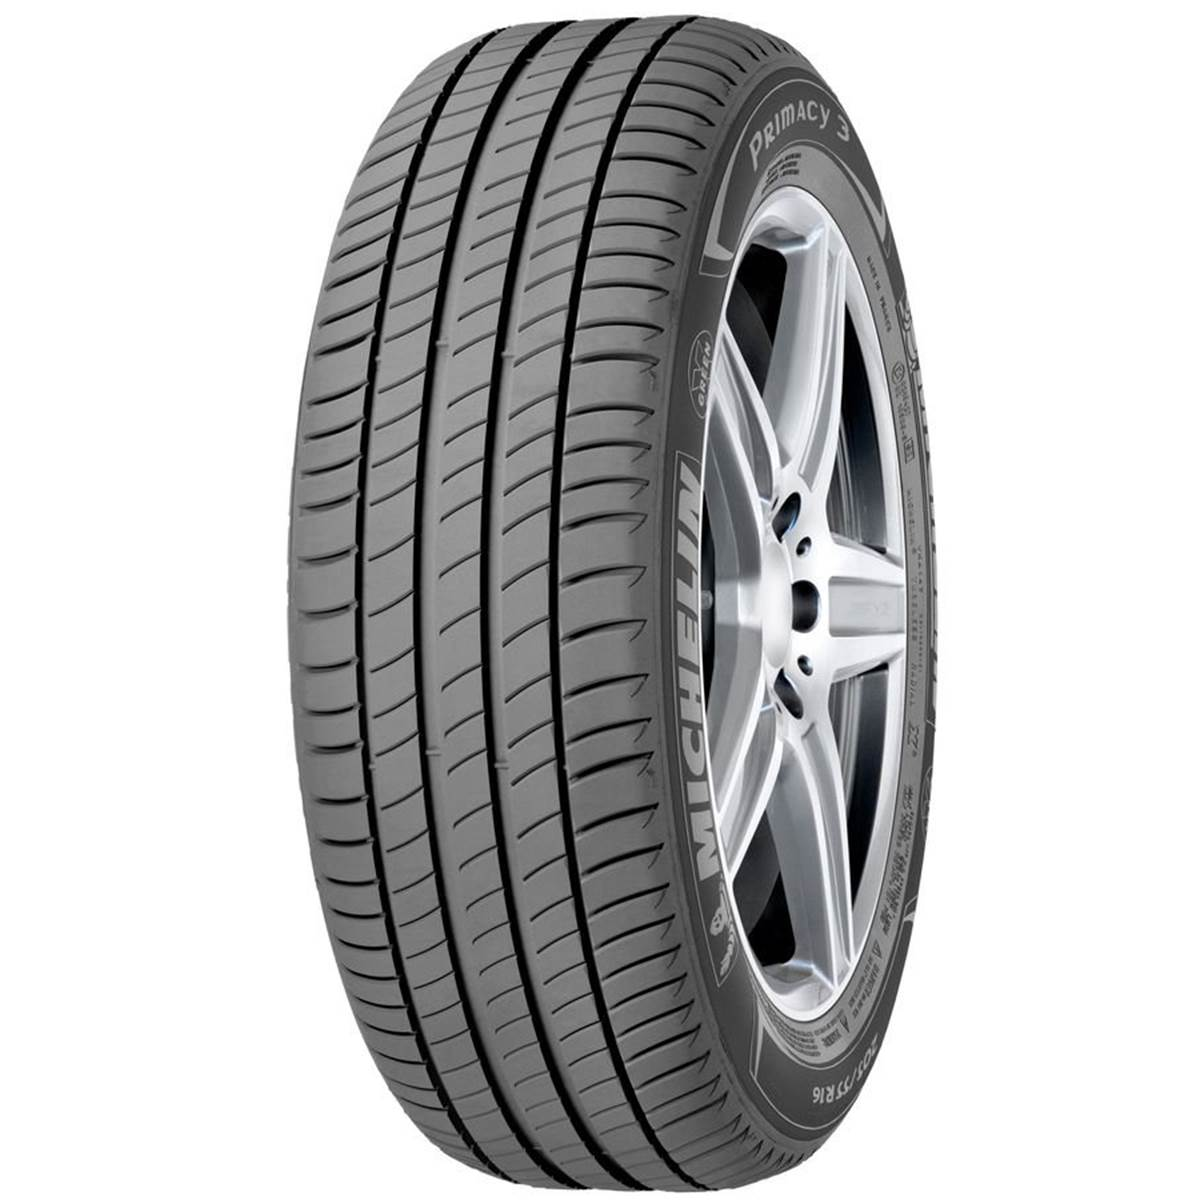 Pneu Michelin 225/45R17 91W Primacy 3